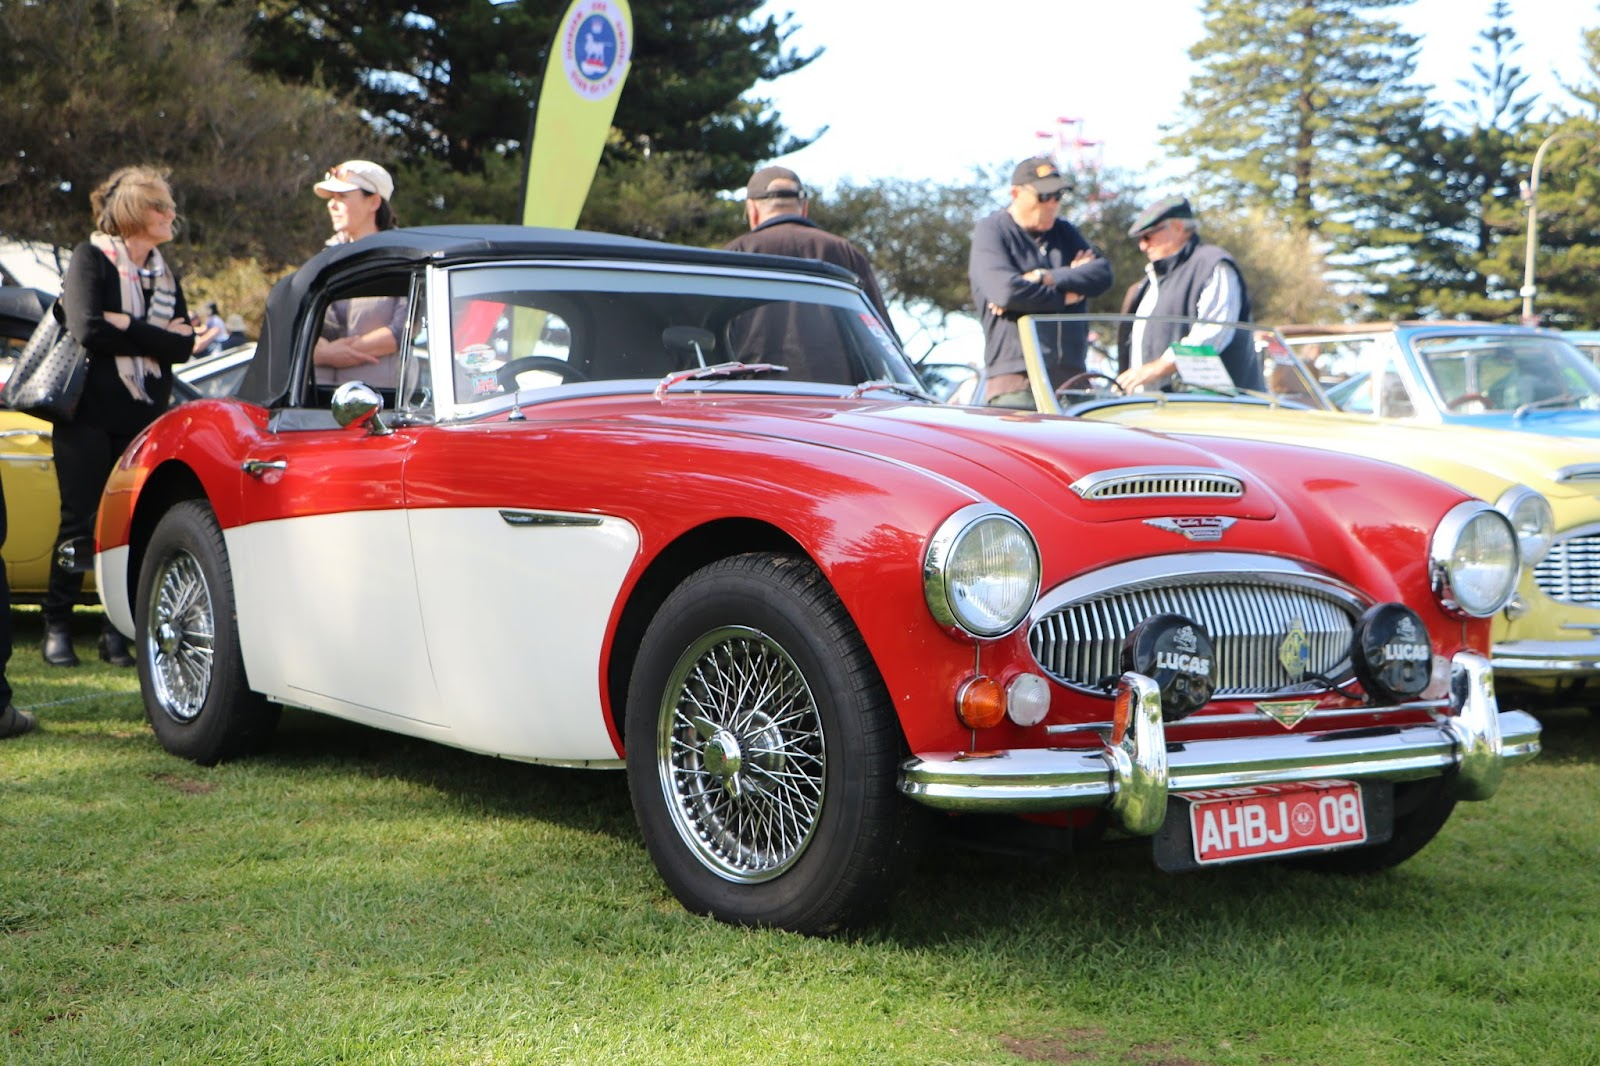 Austin-Healey 3000 - British_Classic_Tour_6_May_2018_0062.JPG